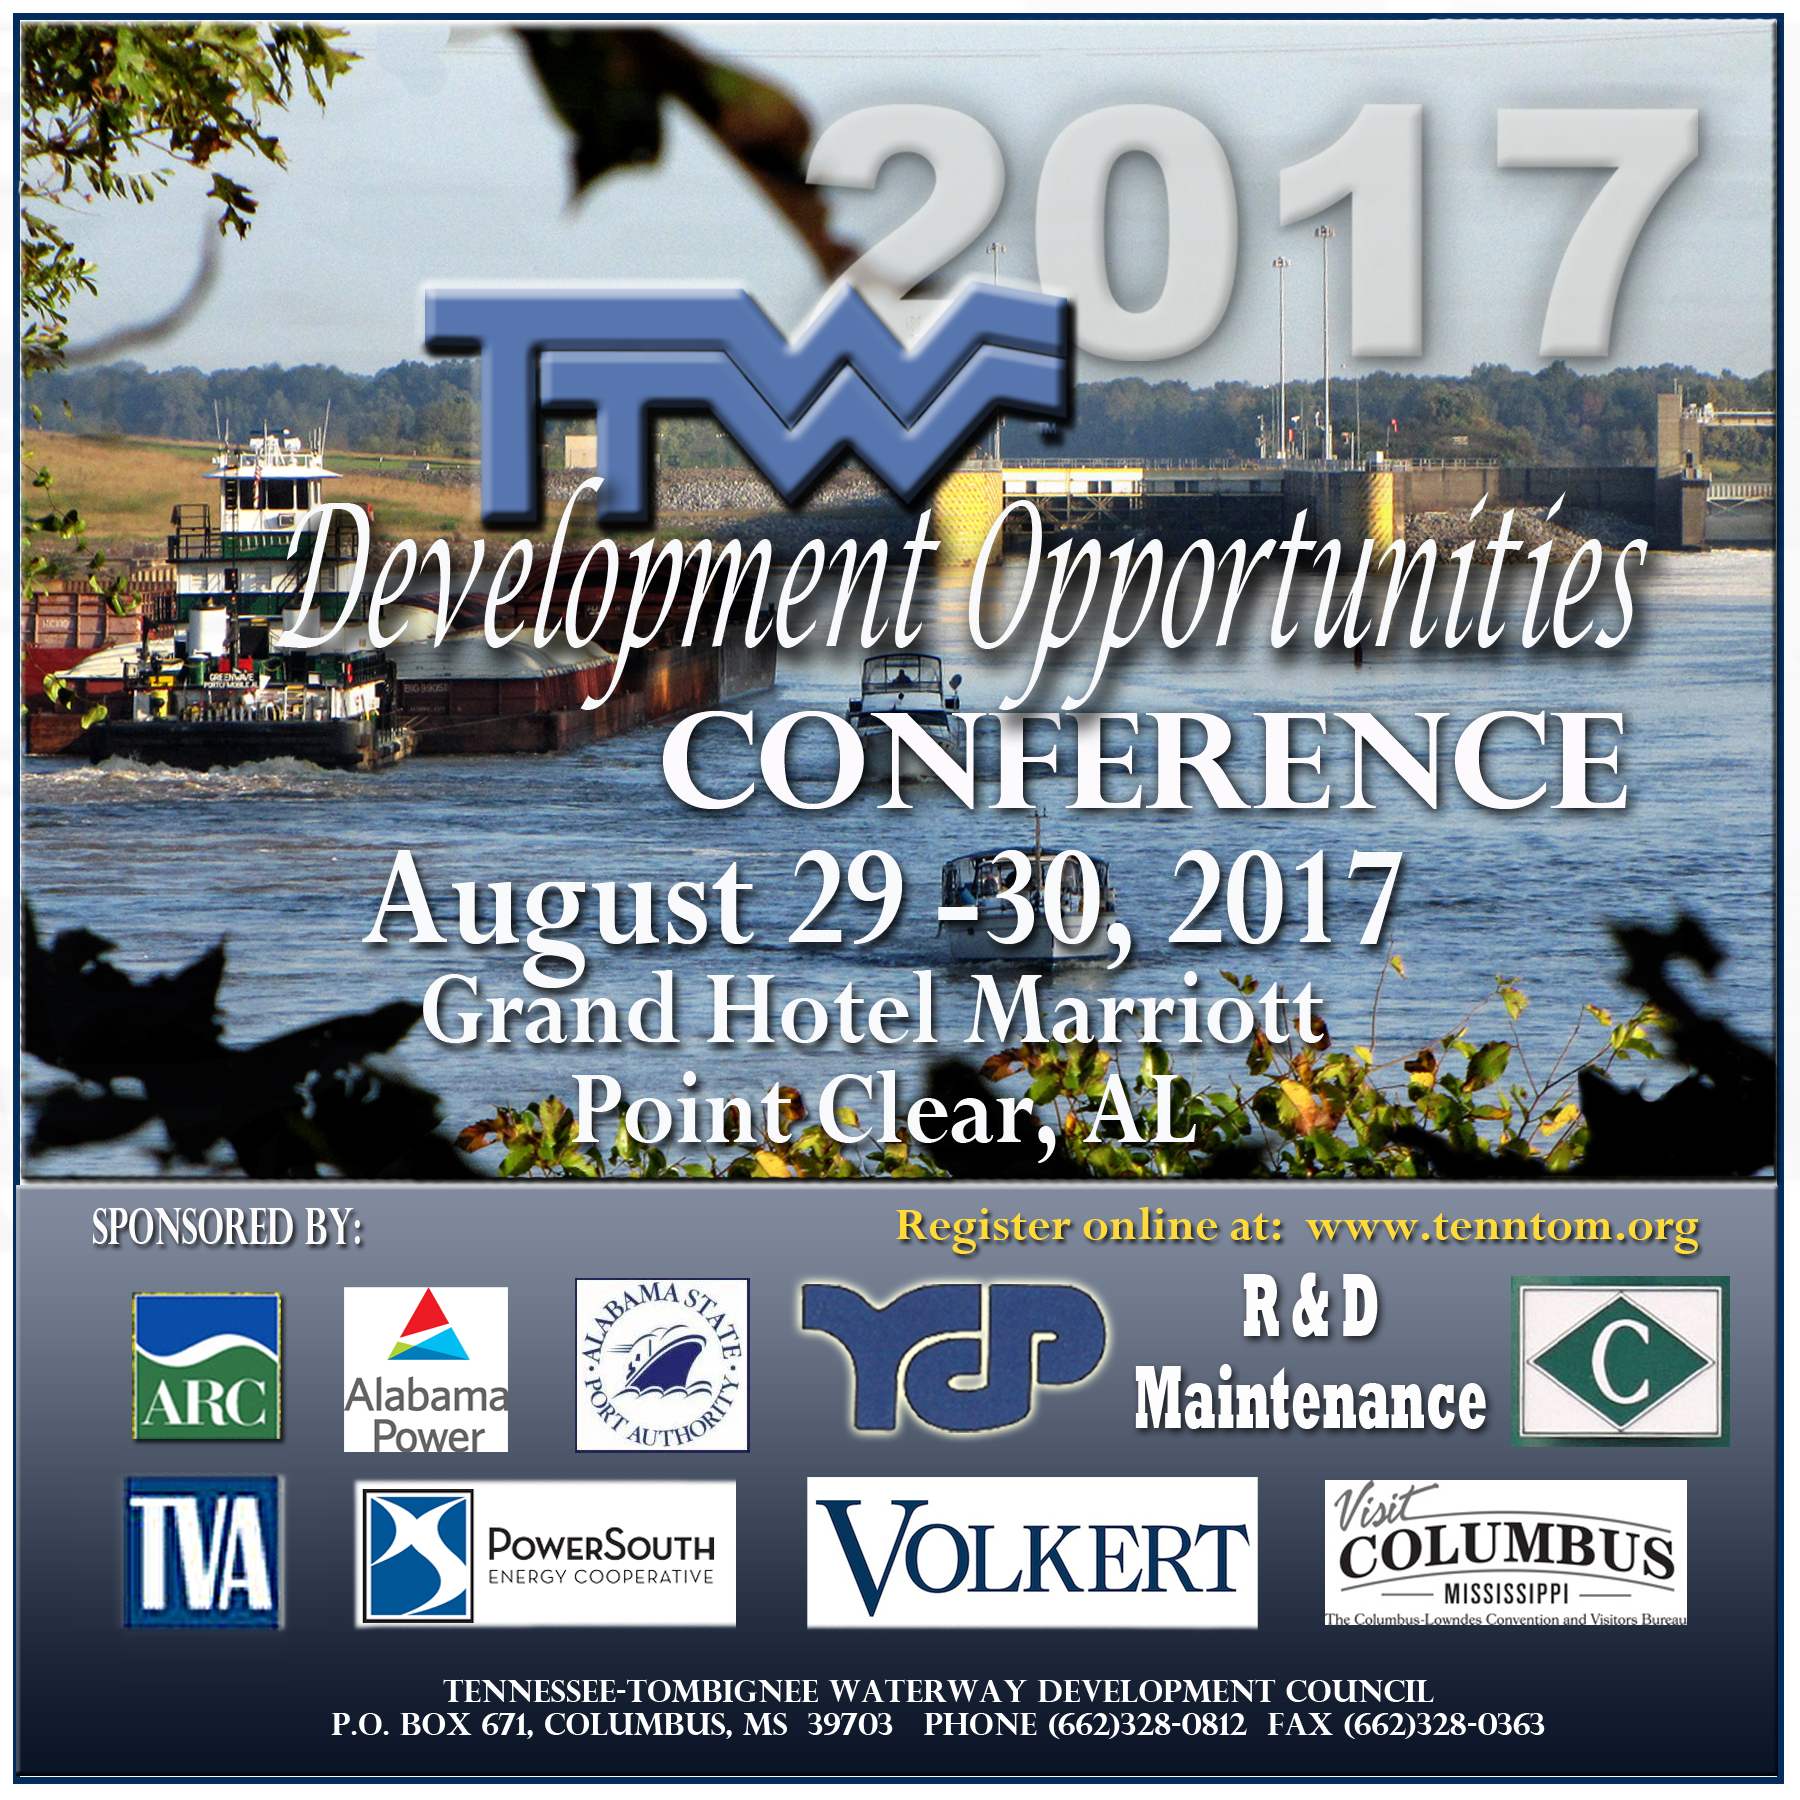 2017 Tenn Tomm Development Opportunities Conference. Click to register